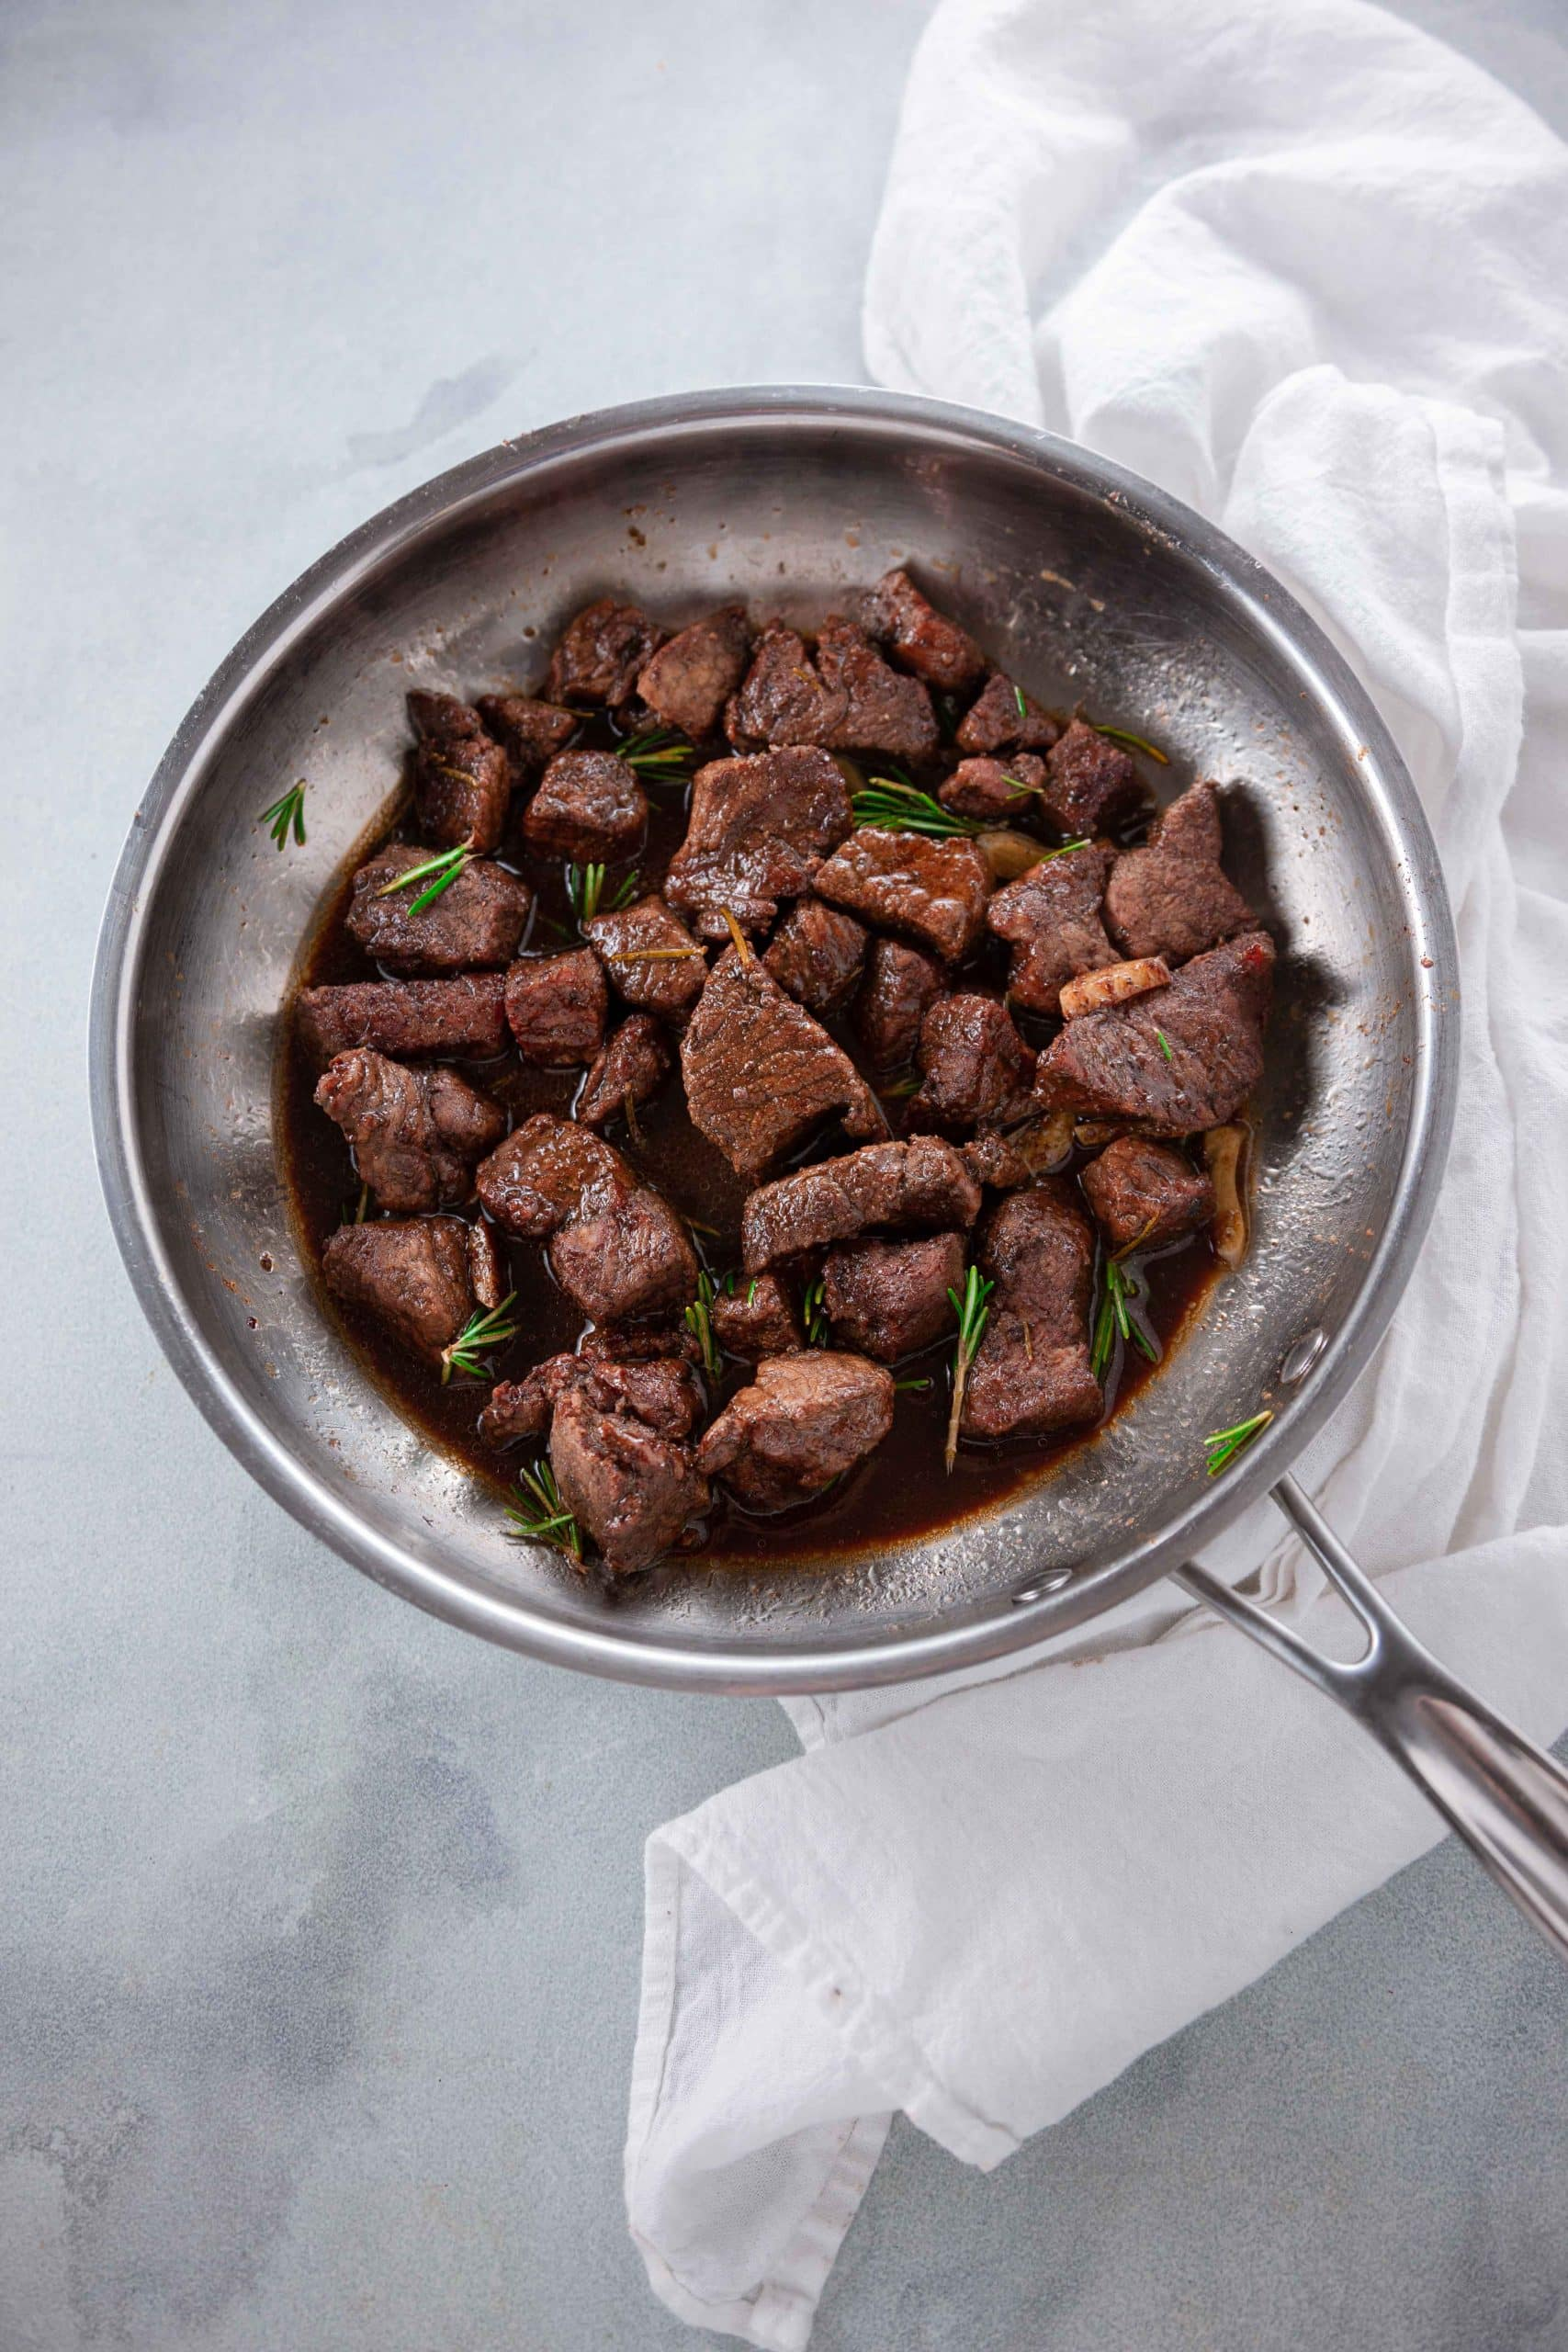 Rosemary Balsamic Steak Tips from overhead in a silver pan.